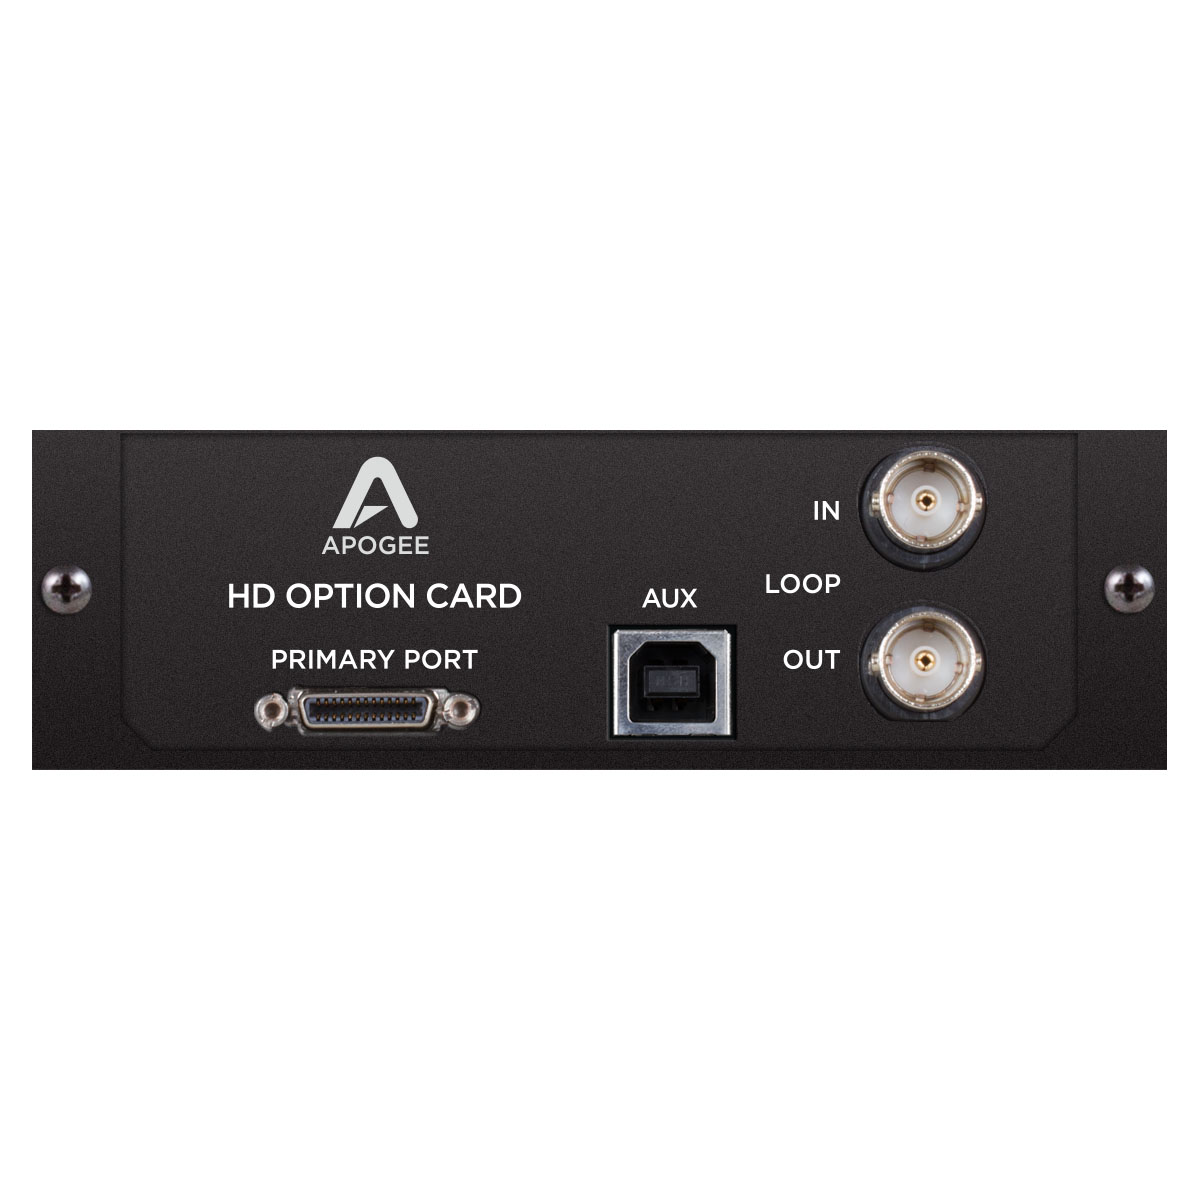 Apogee SYMPHONY IO 8X8 MKII PTHD 03 Strumentazioni Pro Audio per studi di registrazione, Audio digitale: Convertitori e schede audio, Interfacce e schede audio USB e Thunderbolt per PC e Mac